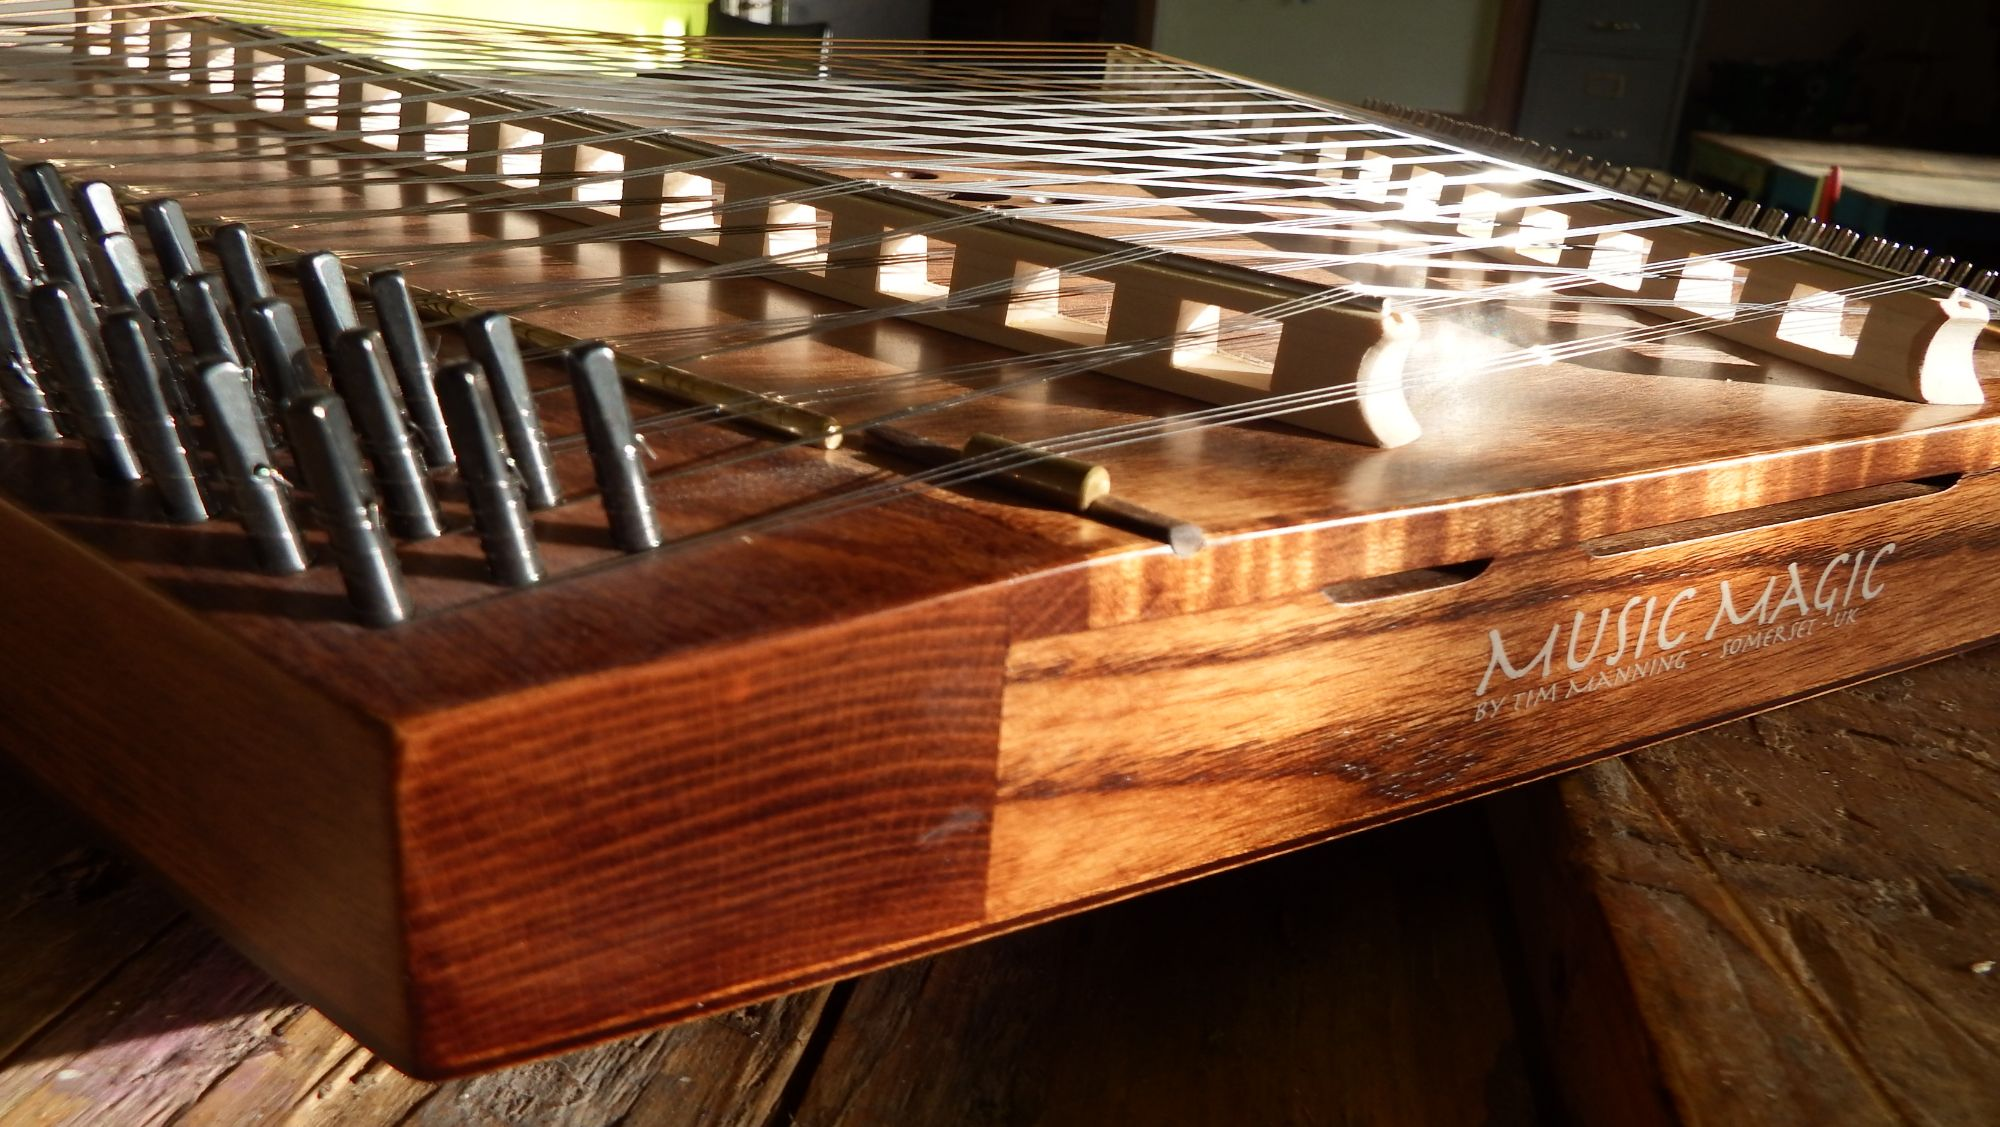 Edge binding dulcimer by Manning